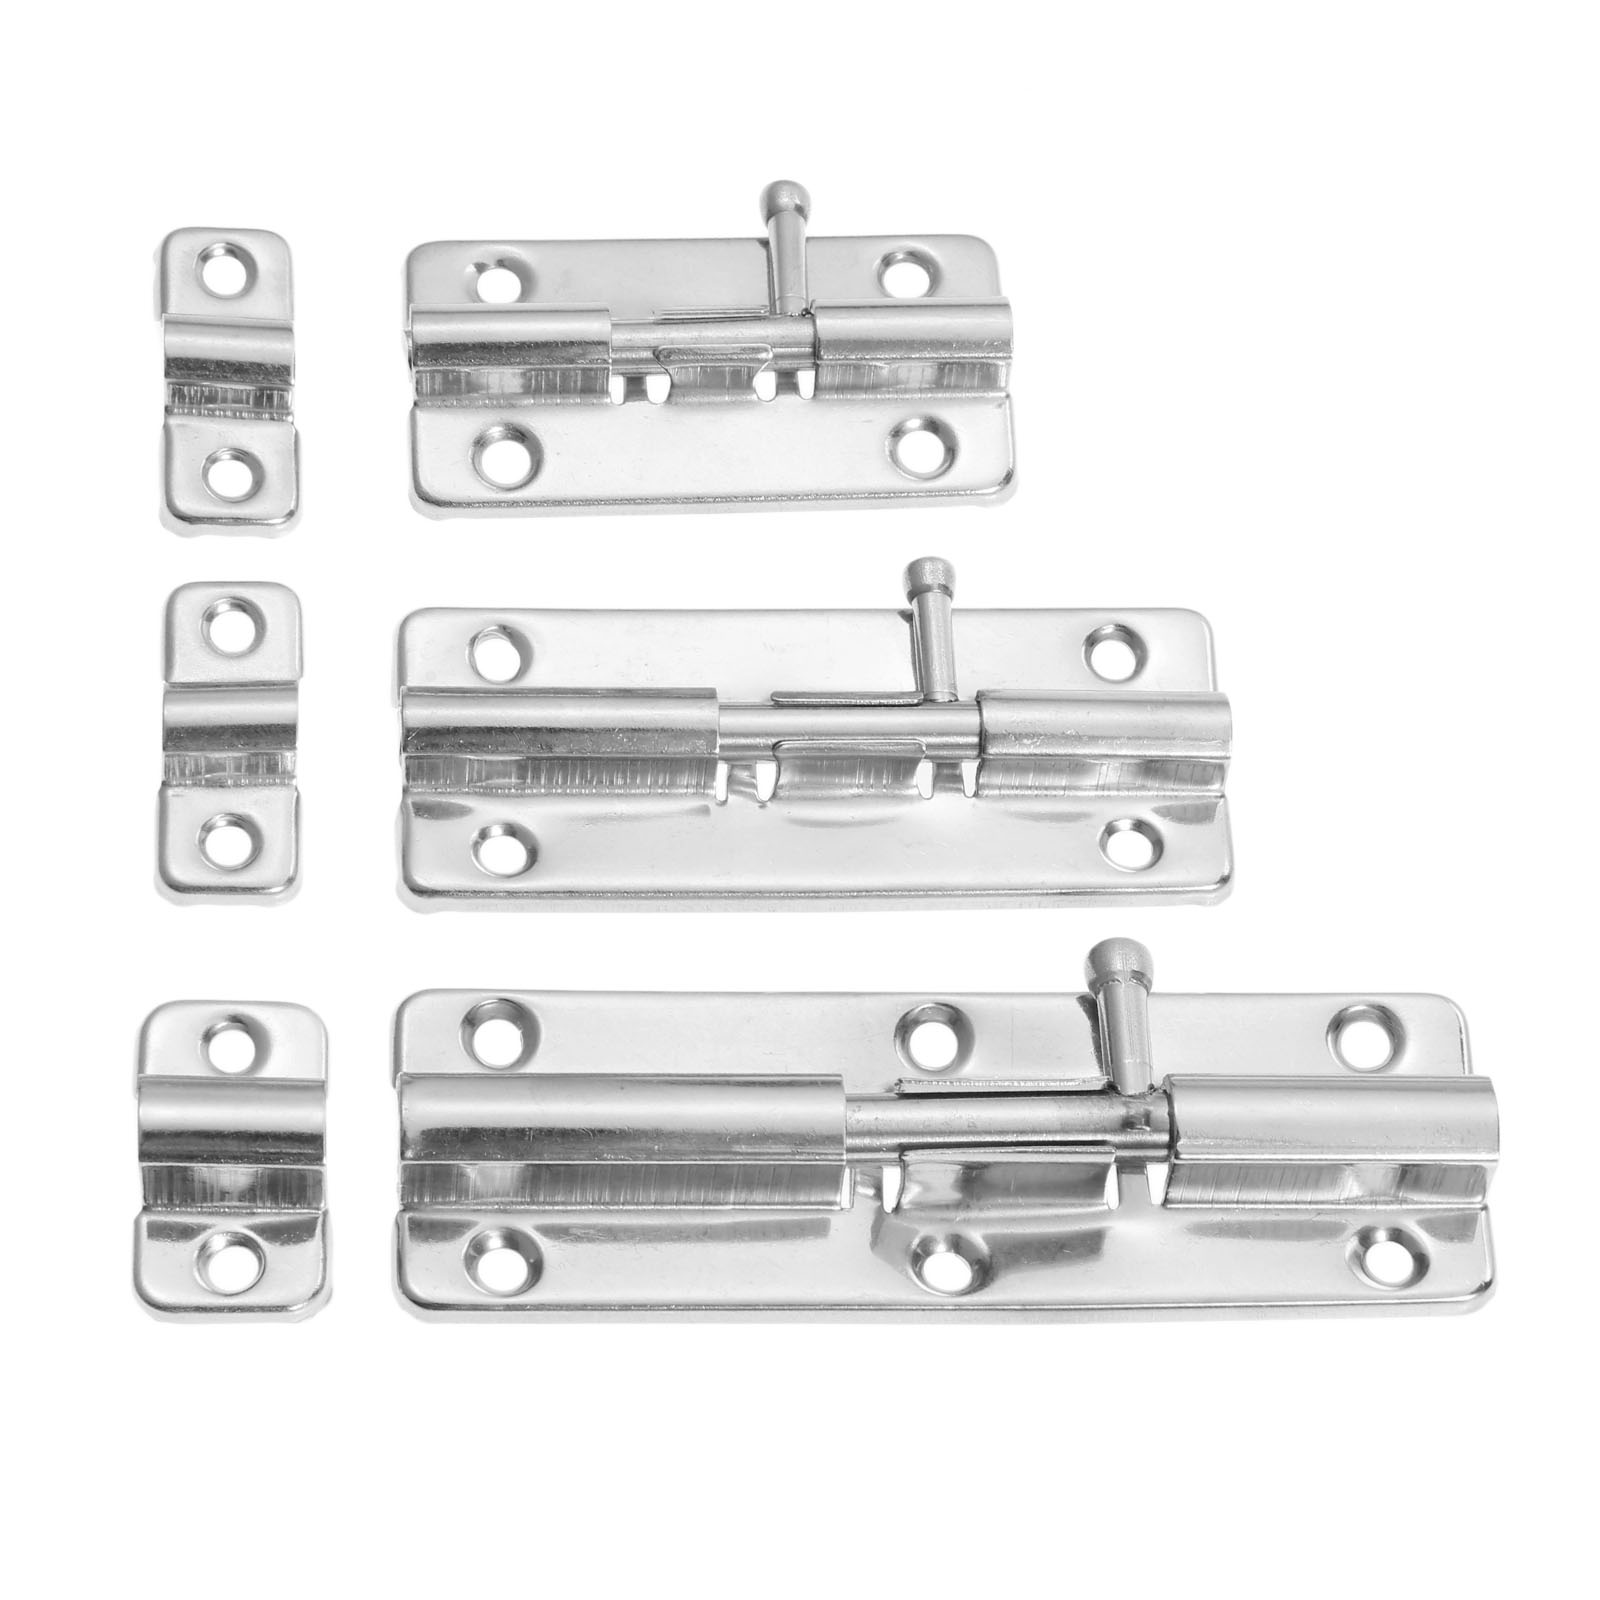 DRELD 1Pc 3/4/5 Inch Long Silver Stainless Steel Door Latch Sliding Lock Barrel Bolt Latch Hasp Stapler Gate Safety Lock подарочный набор парфюмированная вода 30 мл и лосьон для тела 100 мл be tempted holiday dkny